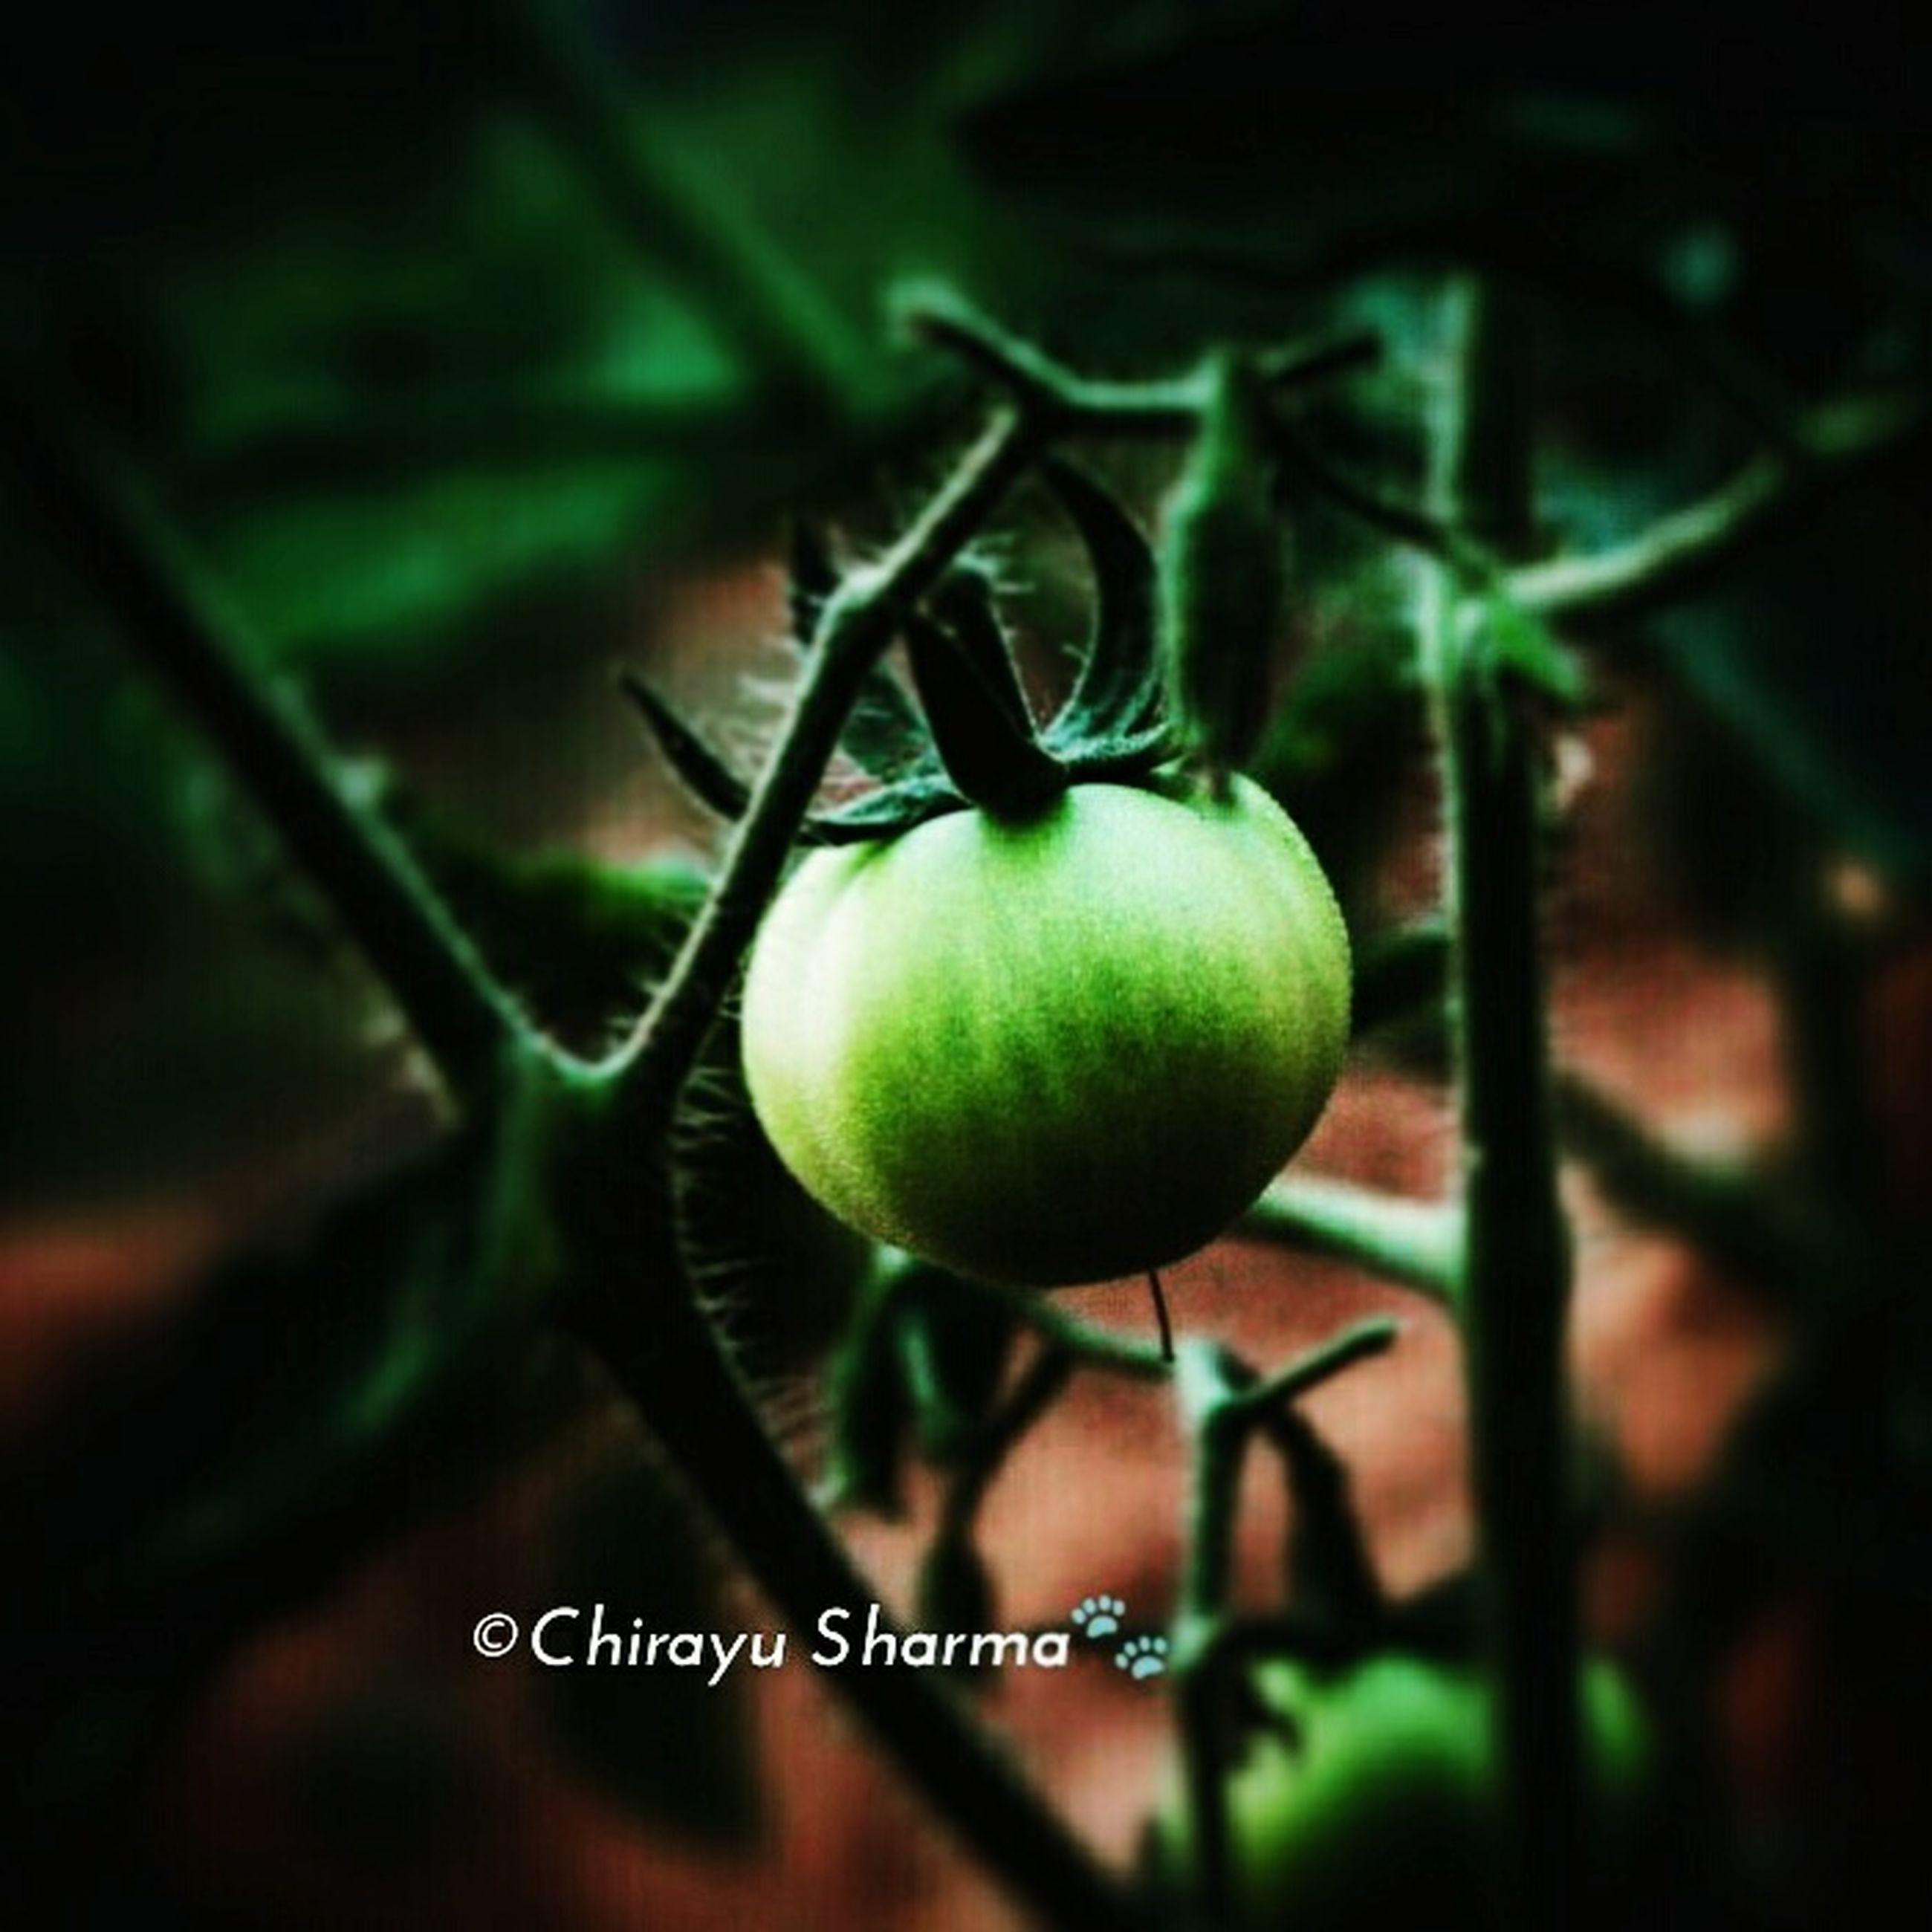 fruit, food and drink, healthy eating, food, green color, freshness, close-up, focus on foreground, growth, ripe, hanging, apple - fruit, apple, organic, leaf, stem, branch, green, no people, plant